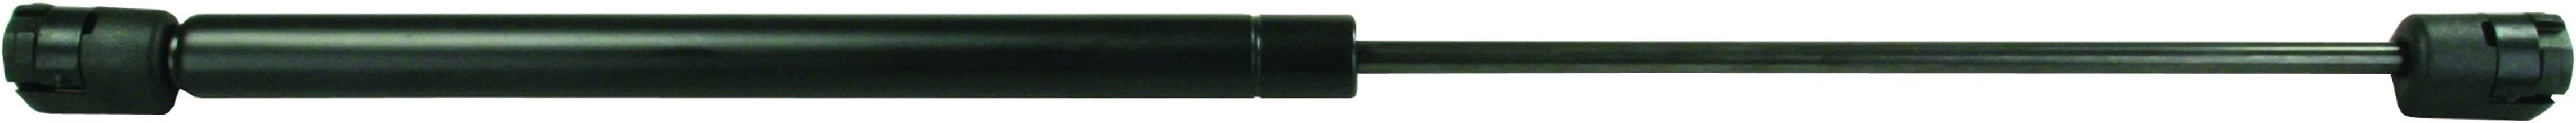 JR Products GSNI-5300-20 Gas Spring